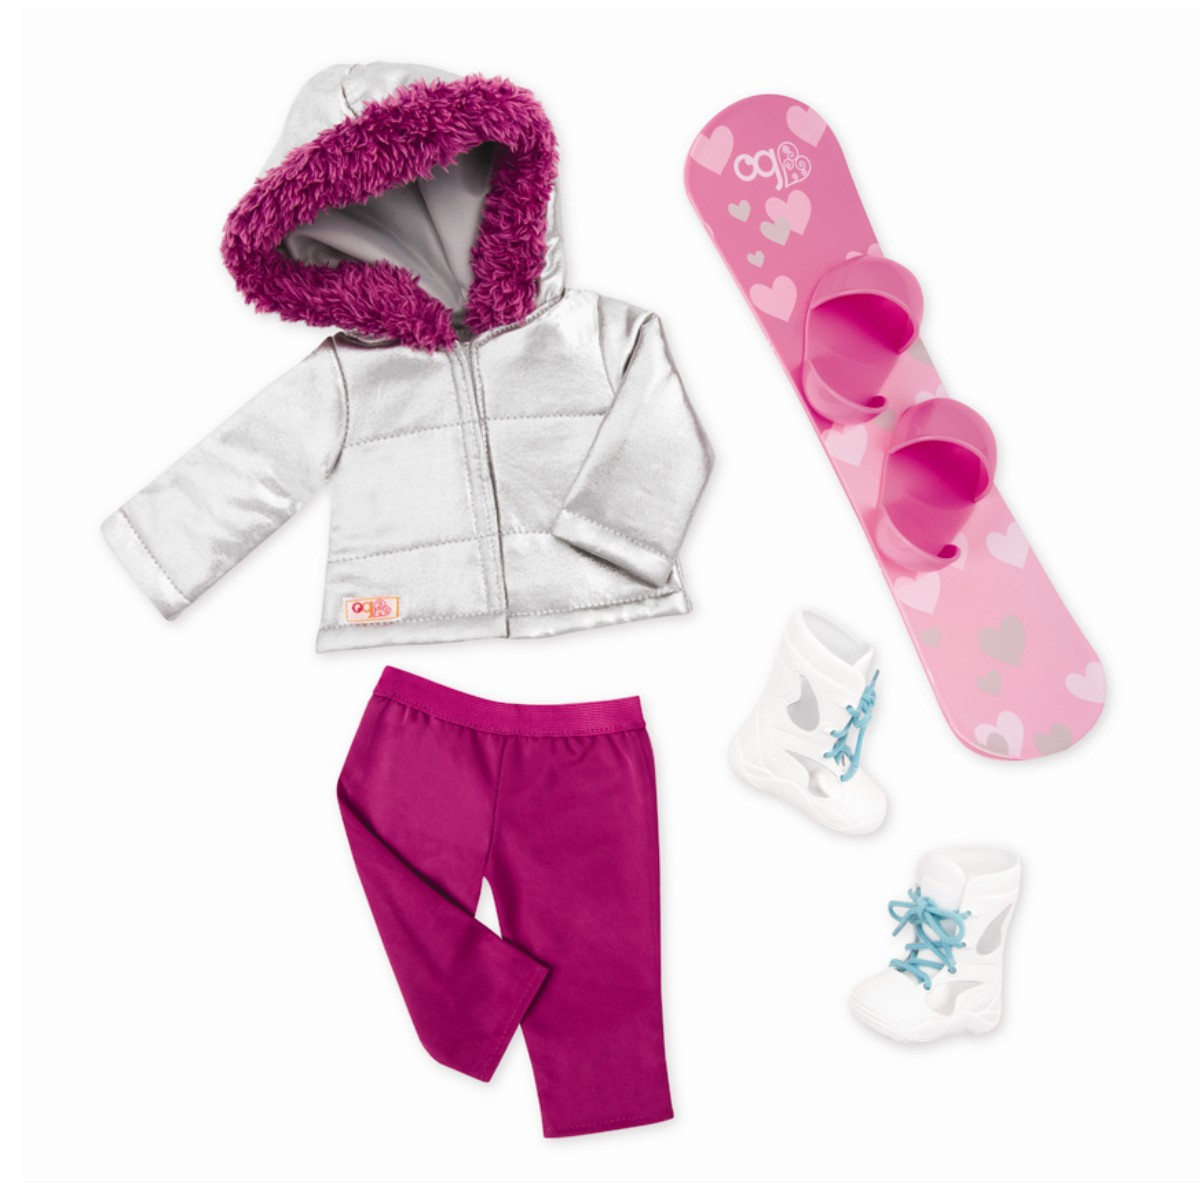 Our Generation - Dolls Clothing - Deluxe Snowbord Winter Outfit (730319)